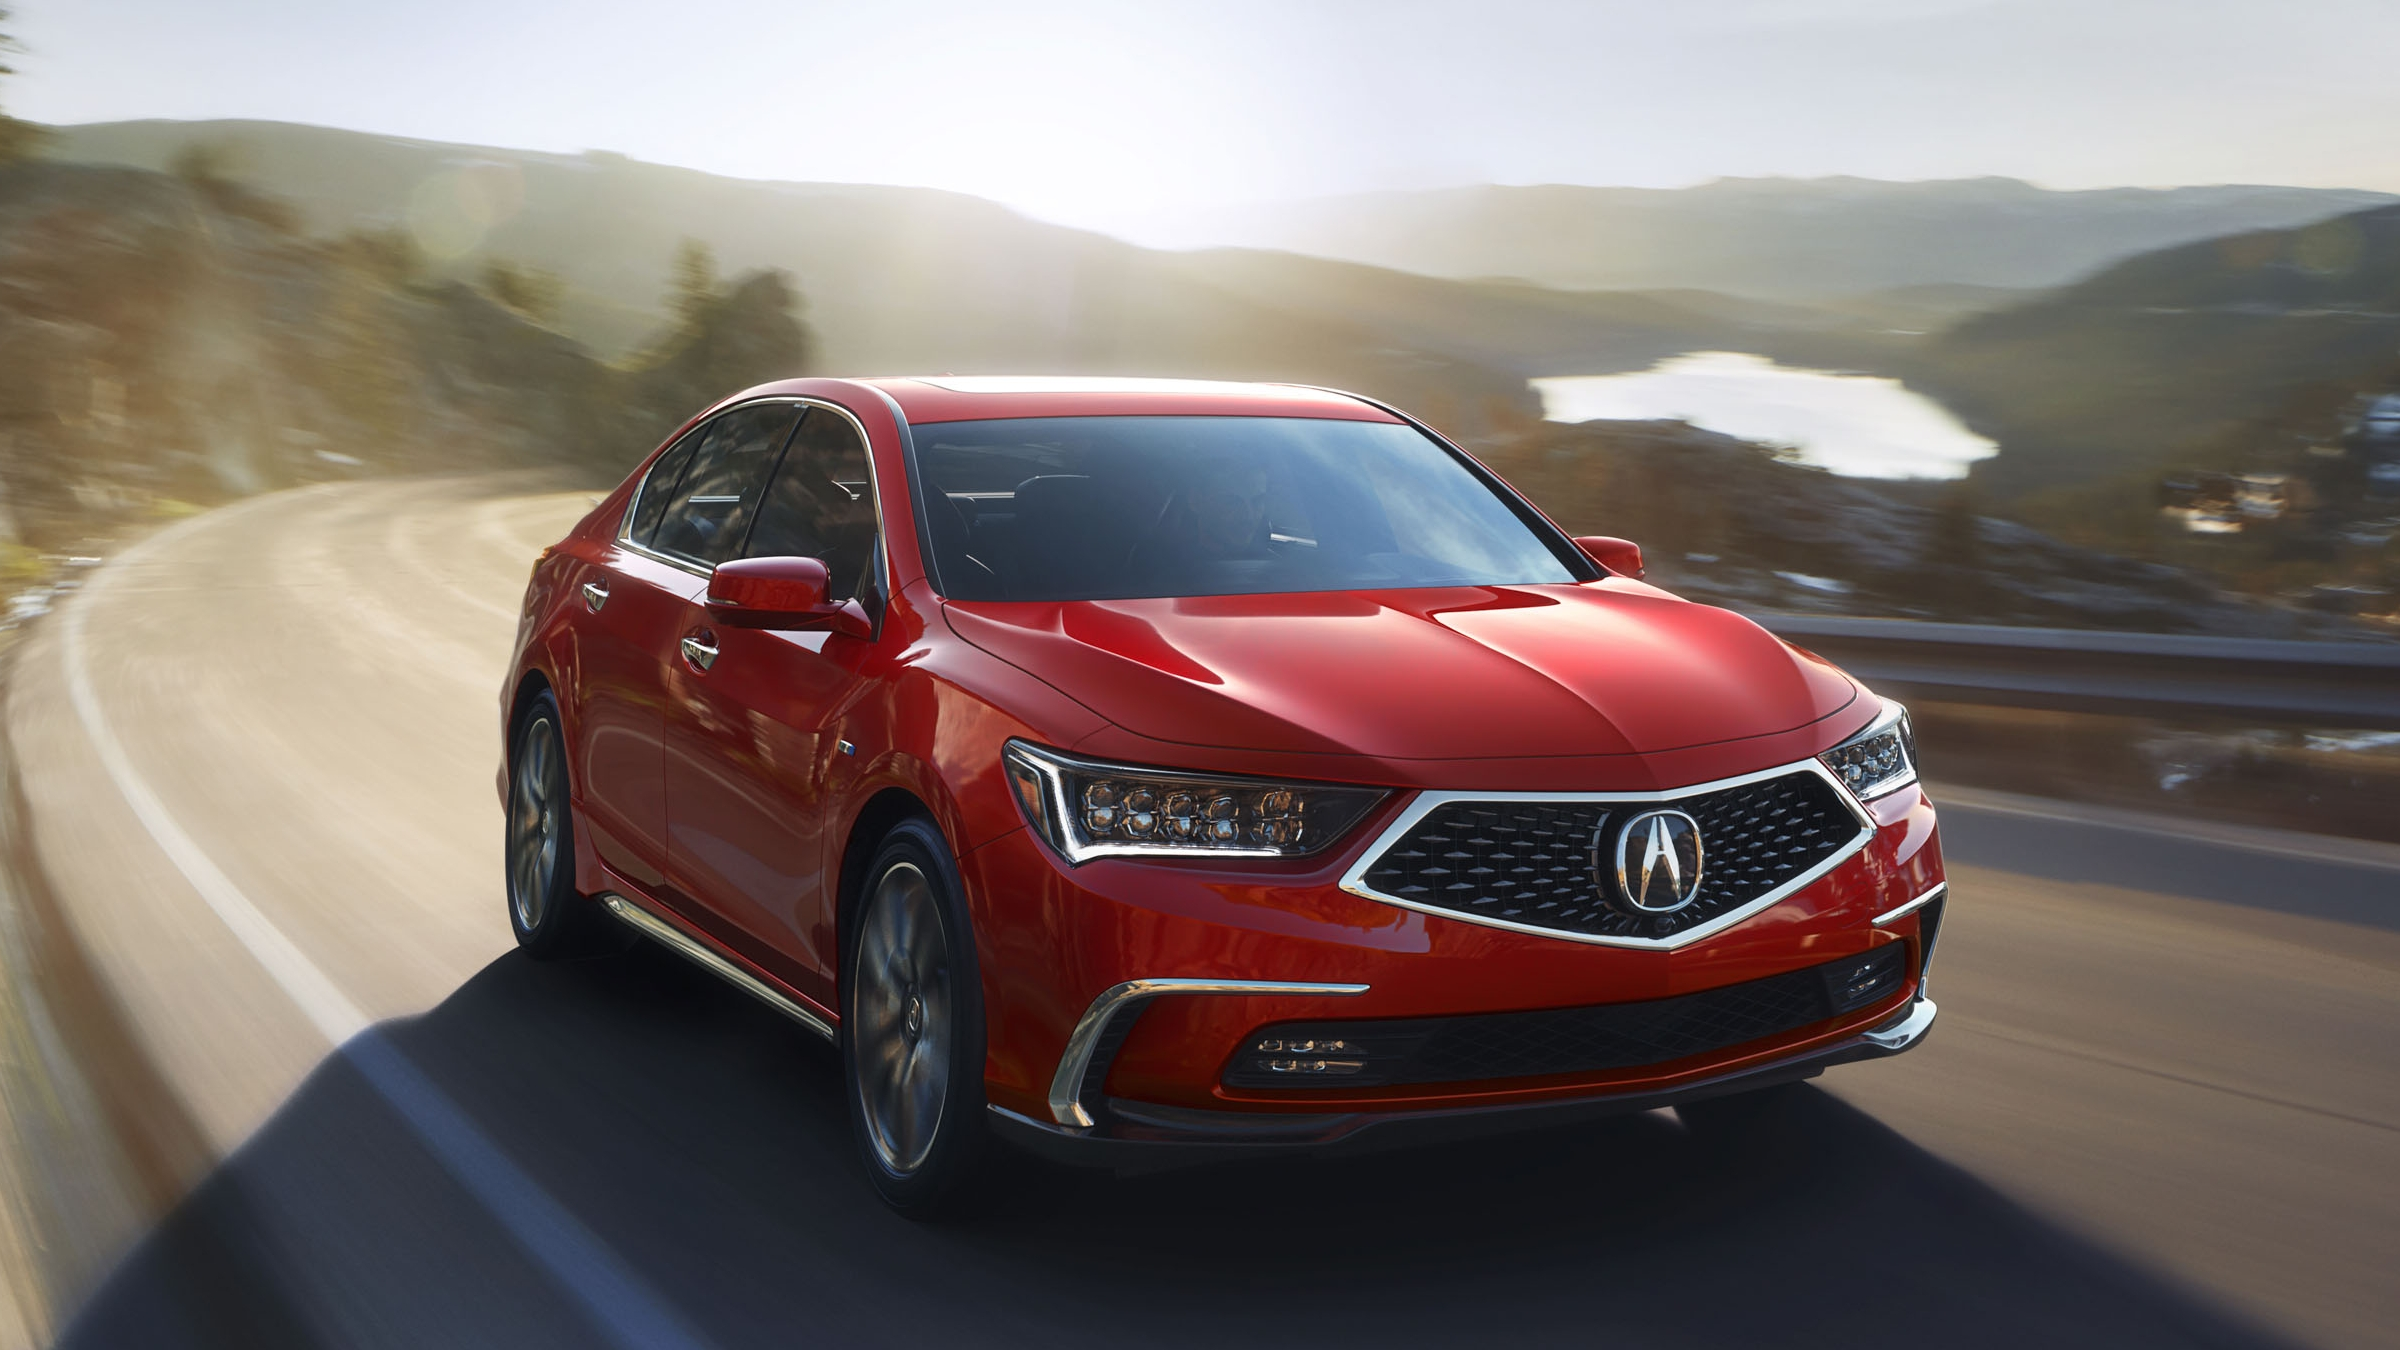 Acura Rlx Reviews Specs Prices Photos And Videos Top Speed Advanced Sports Car Concept